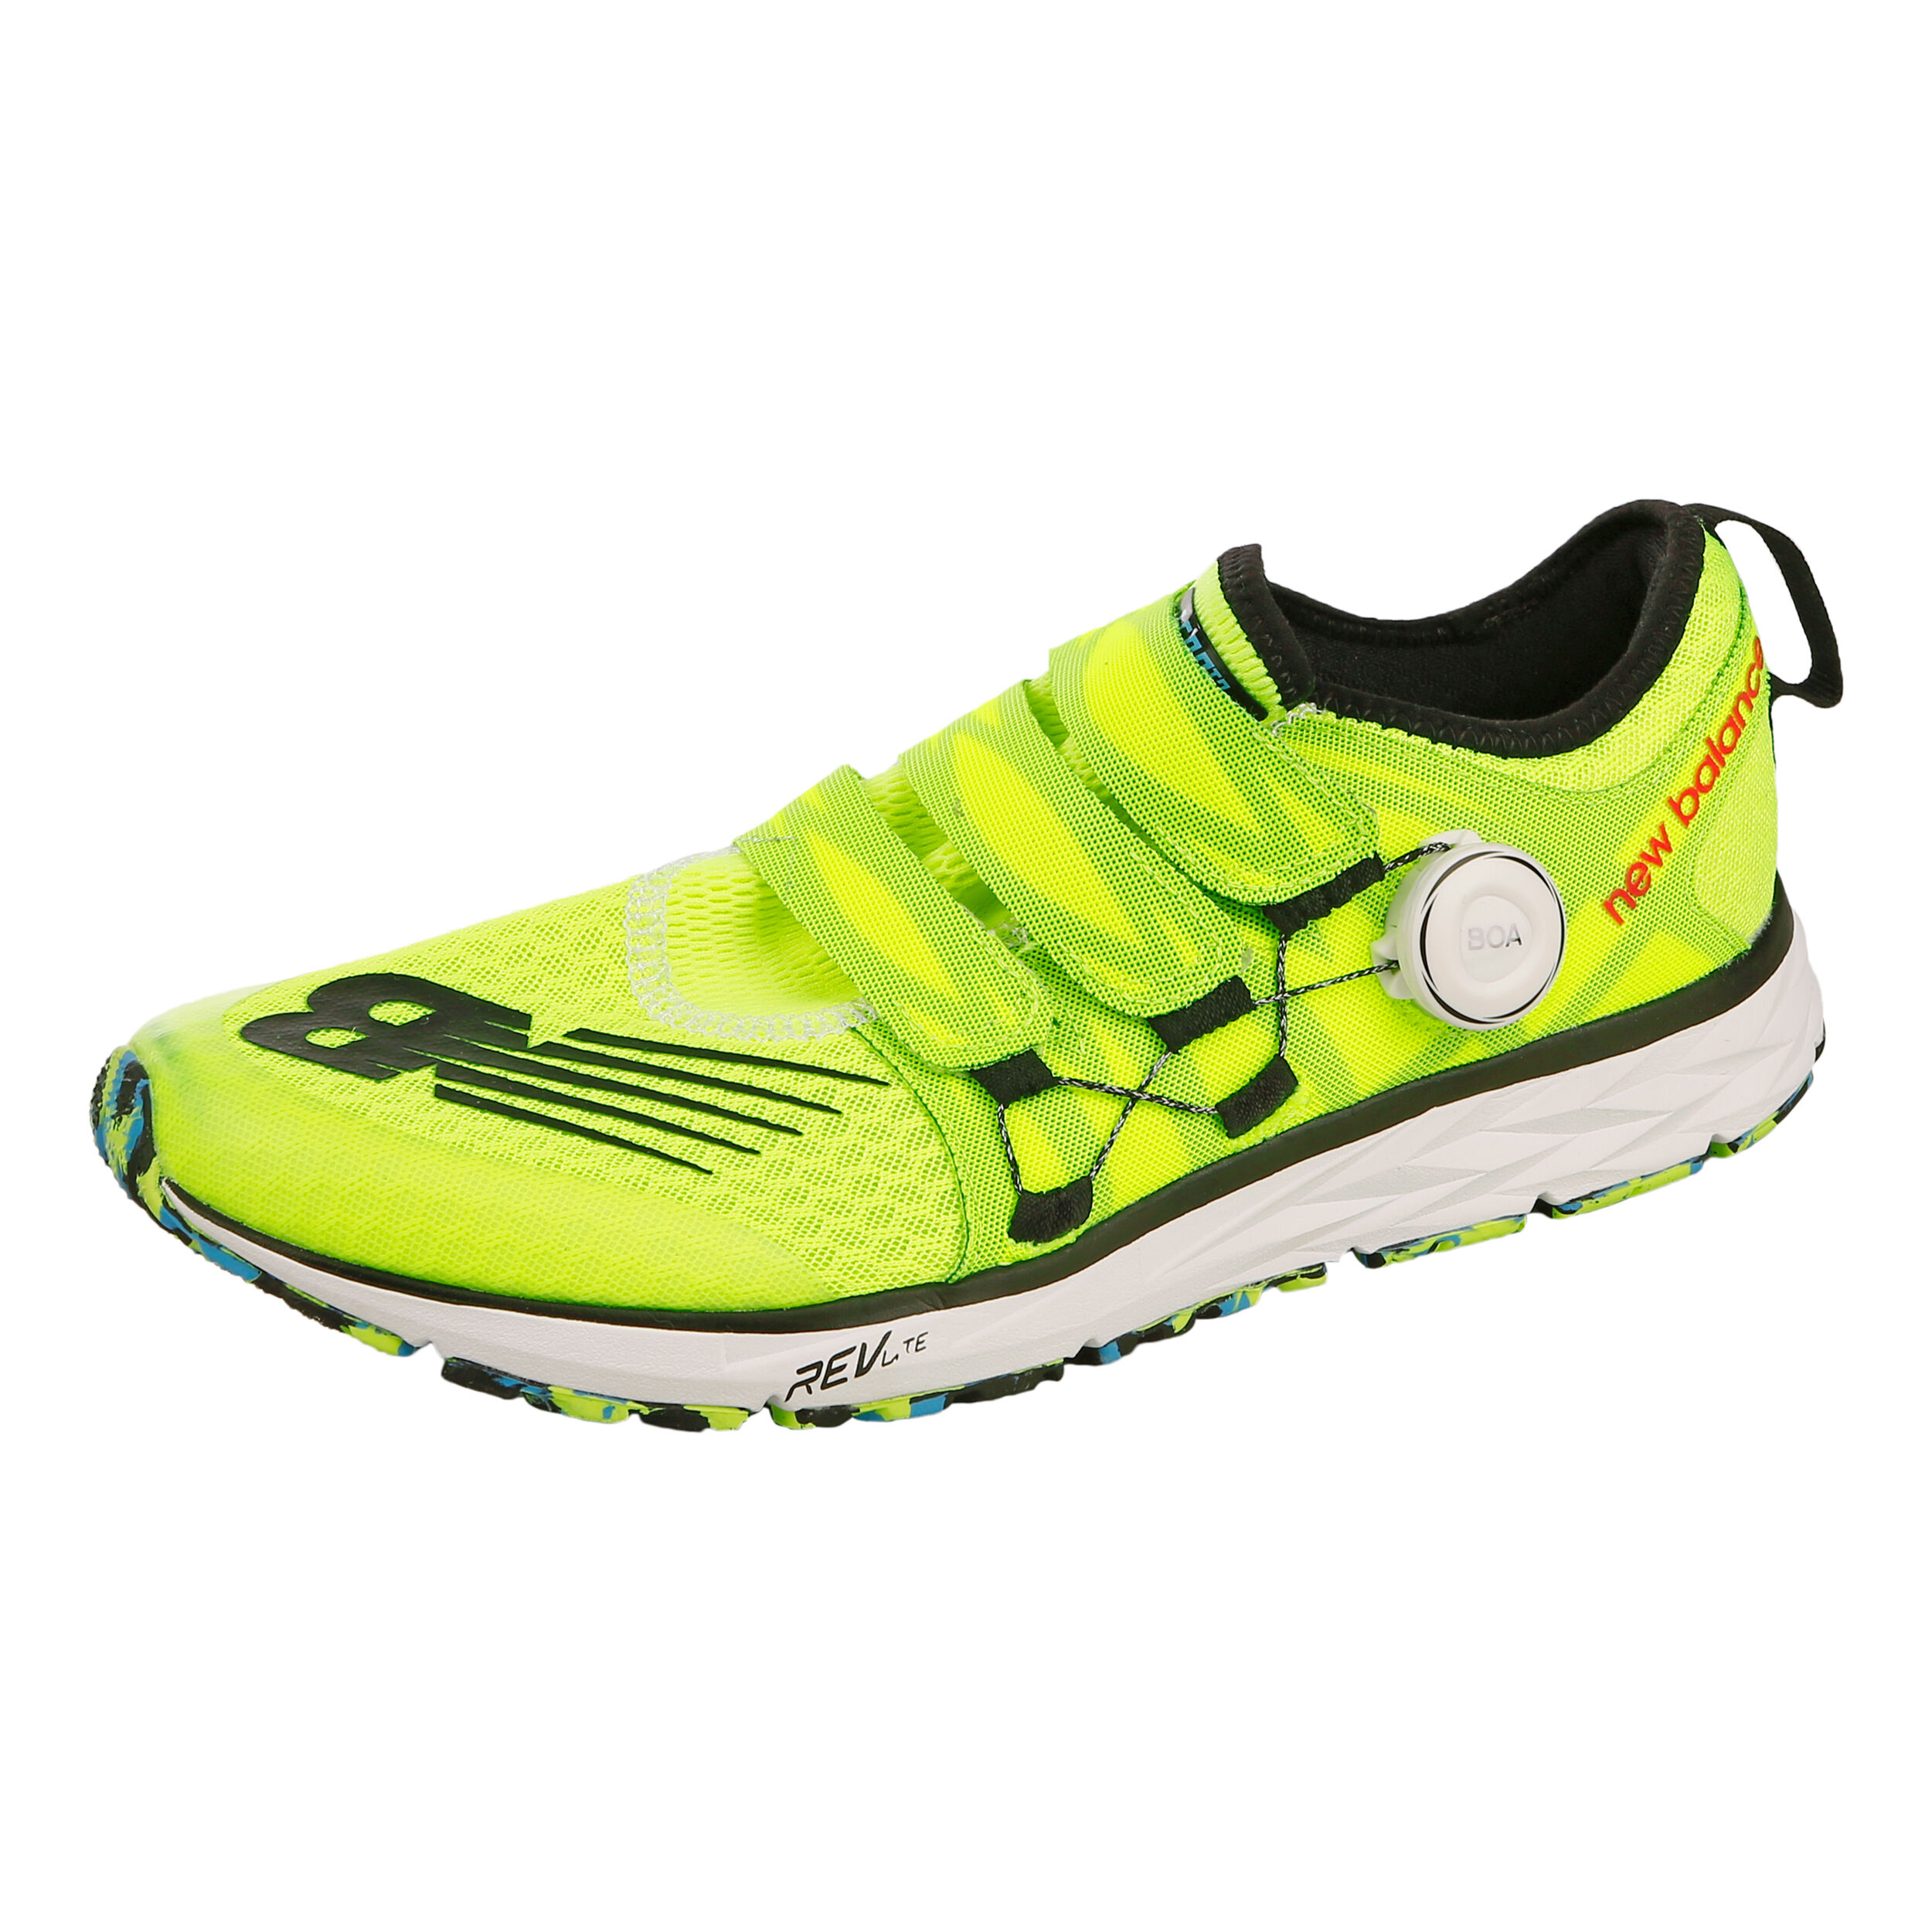 New Balance Race 1500 V4 BOA Competition Running Shoe Men